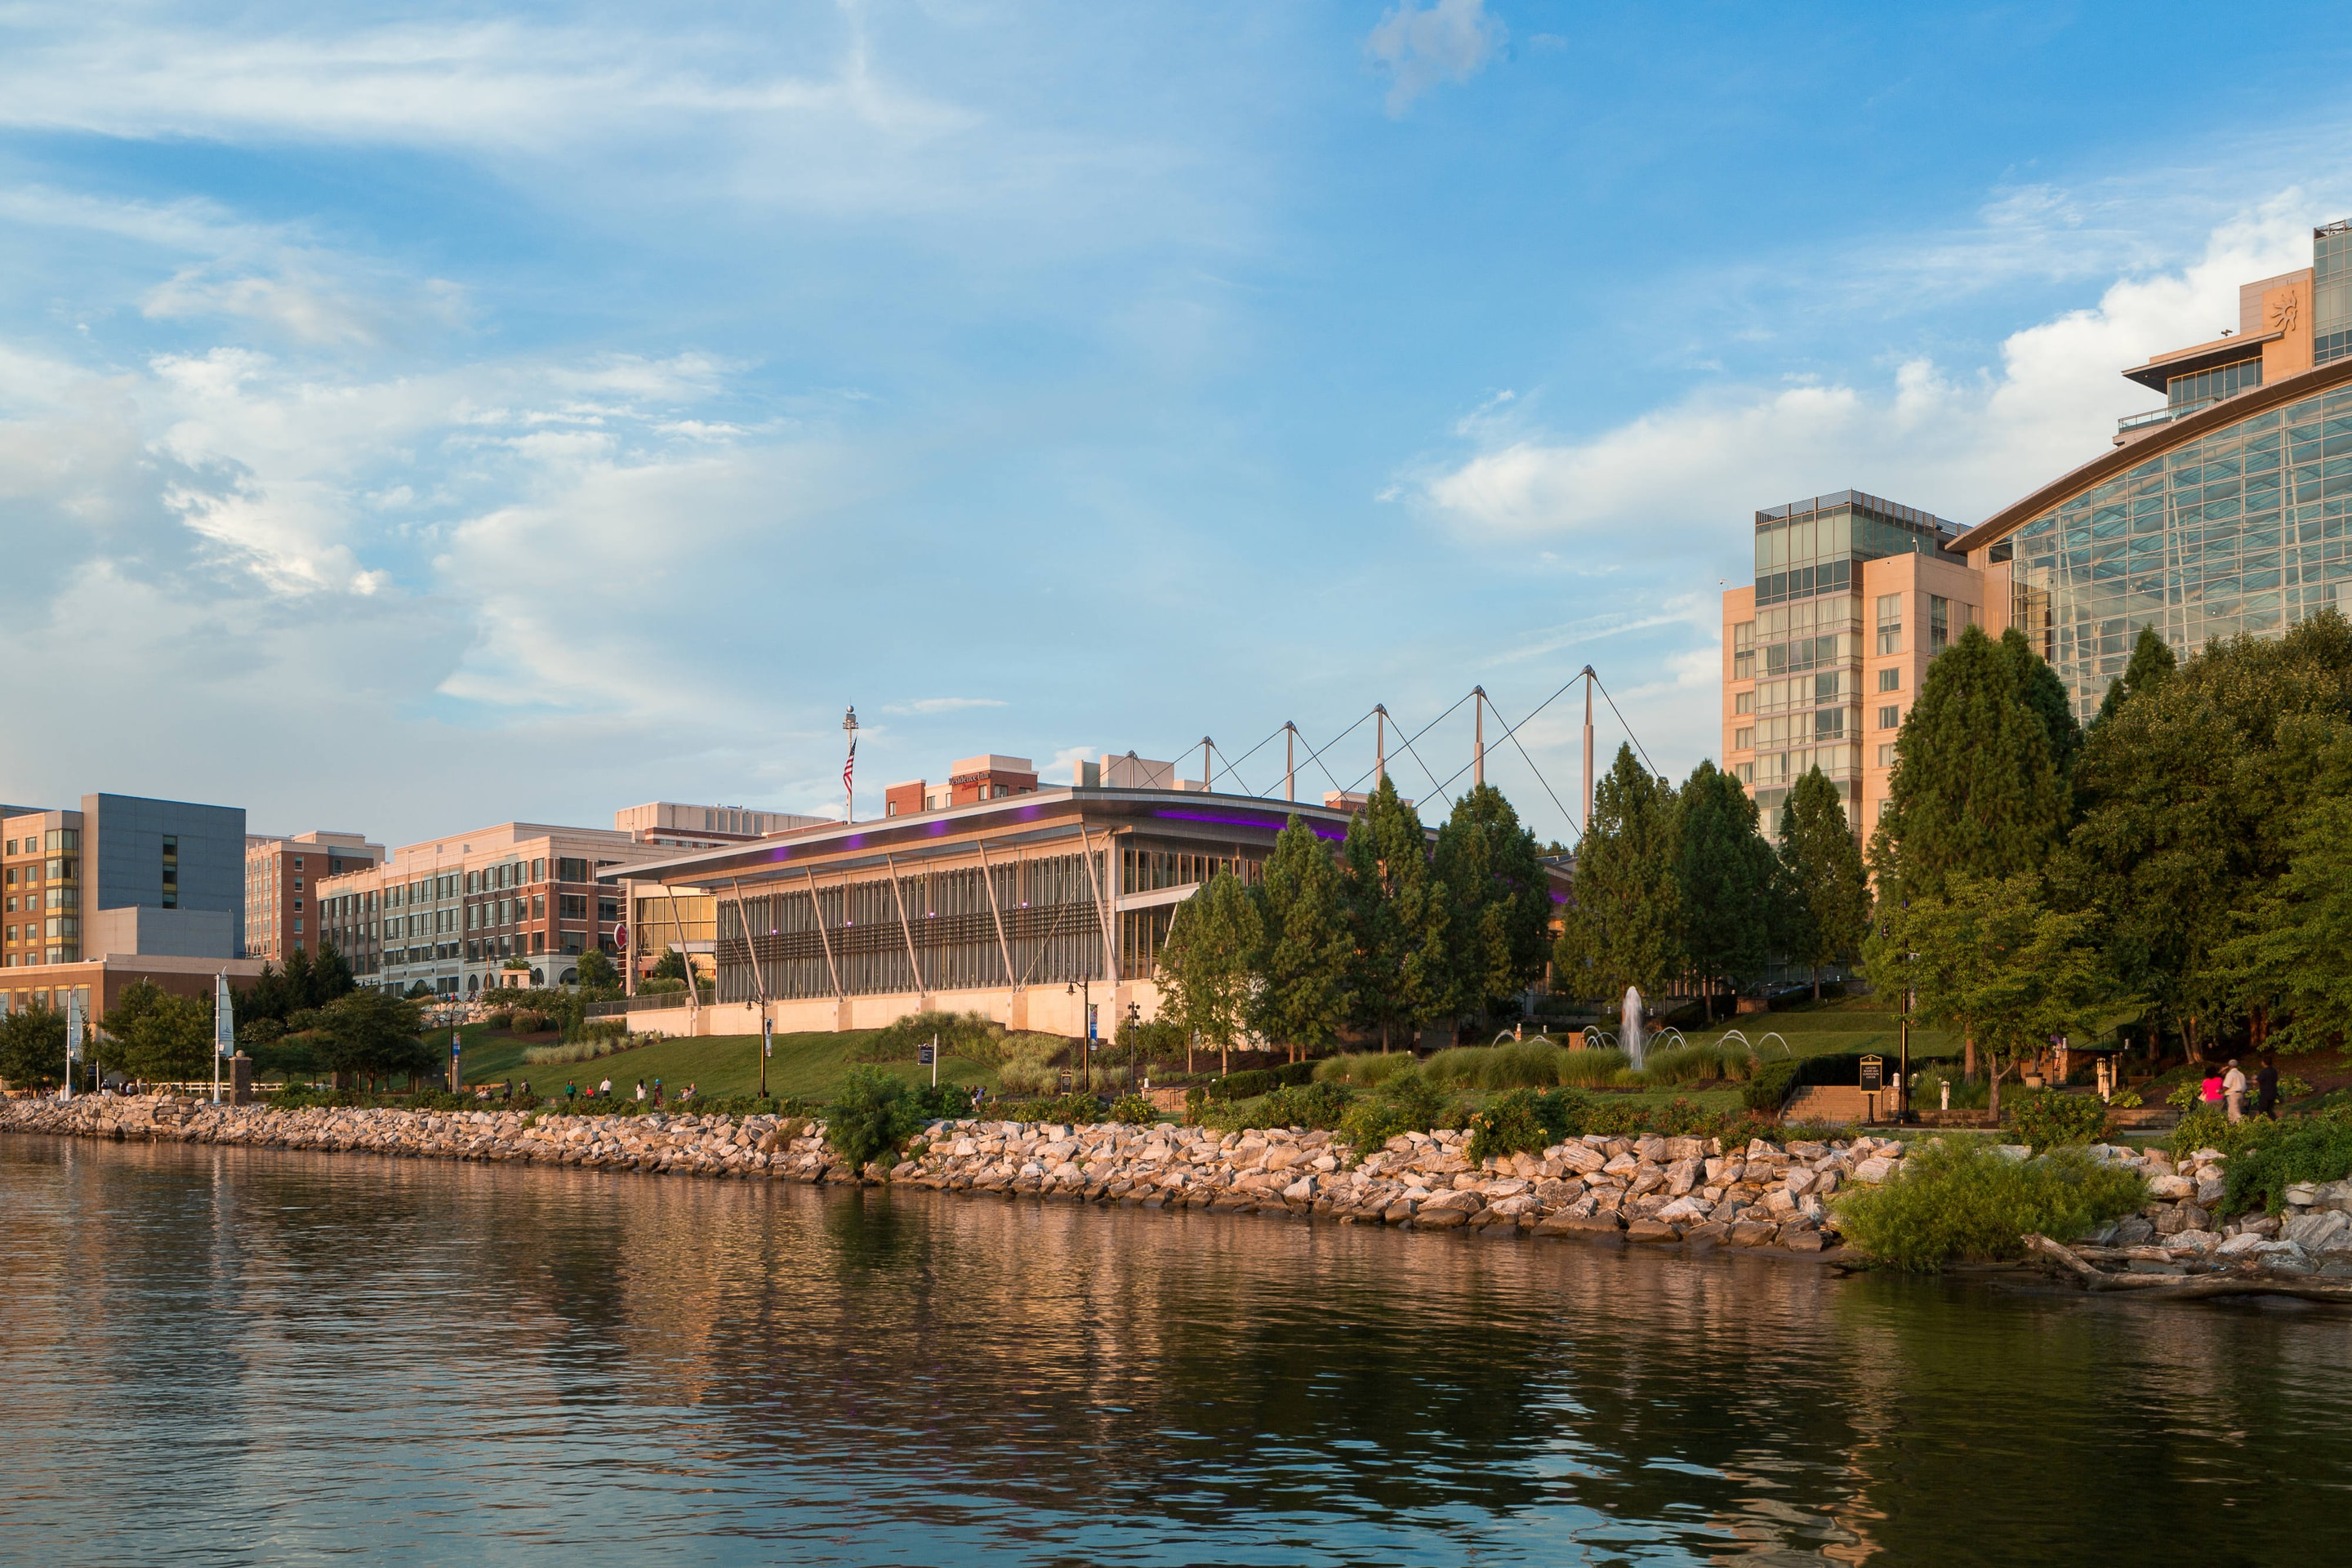 Exterior River View of Gaylord National